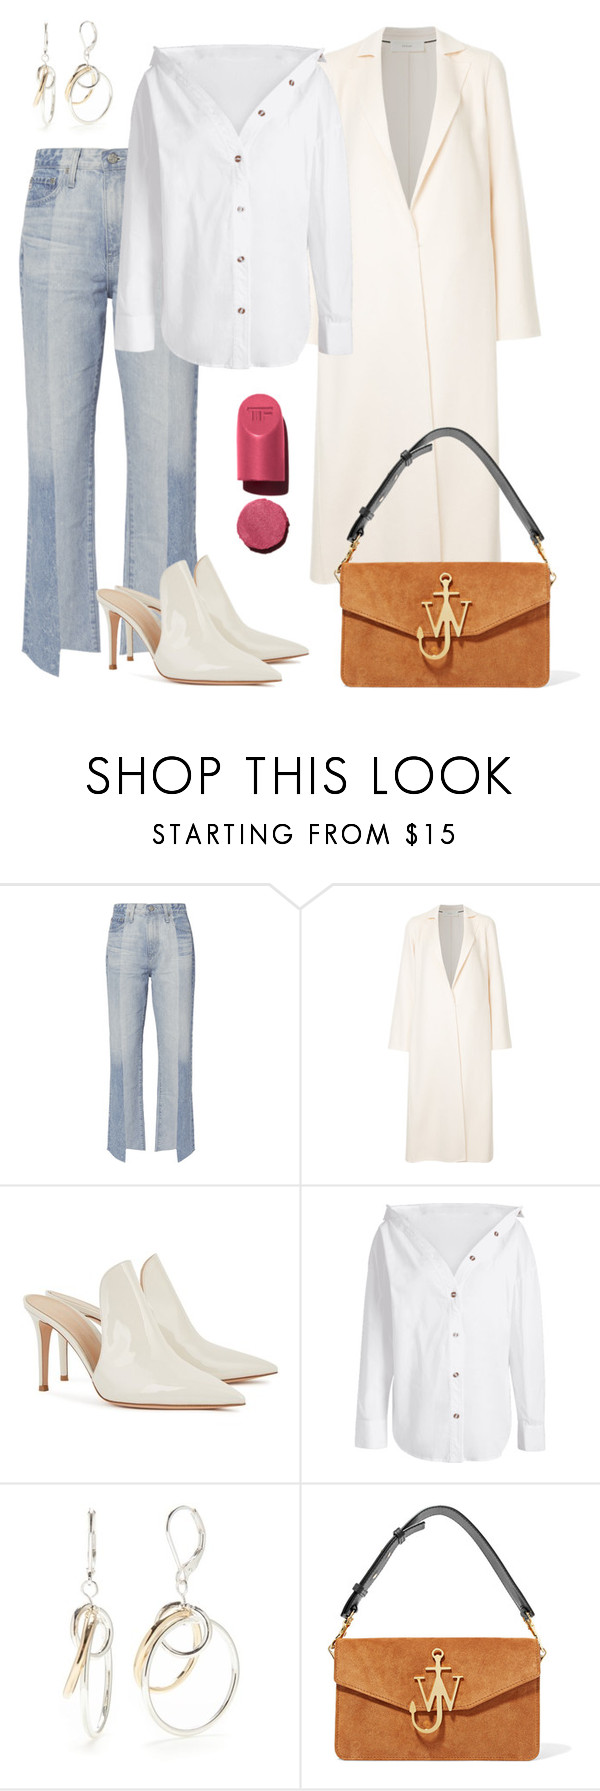 """""""Clean!"""" by schenonek ❤ liked on Polyvore featuring AG Adriano Goldschmied, Cyclas, Gianvito Rossi, Napier and J.W. Anderson"""